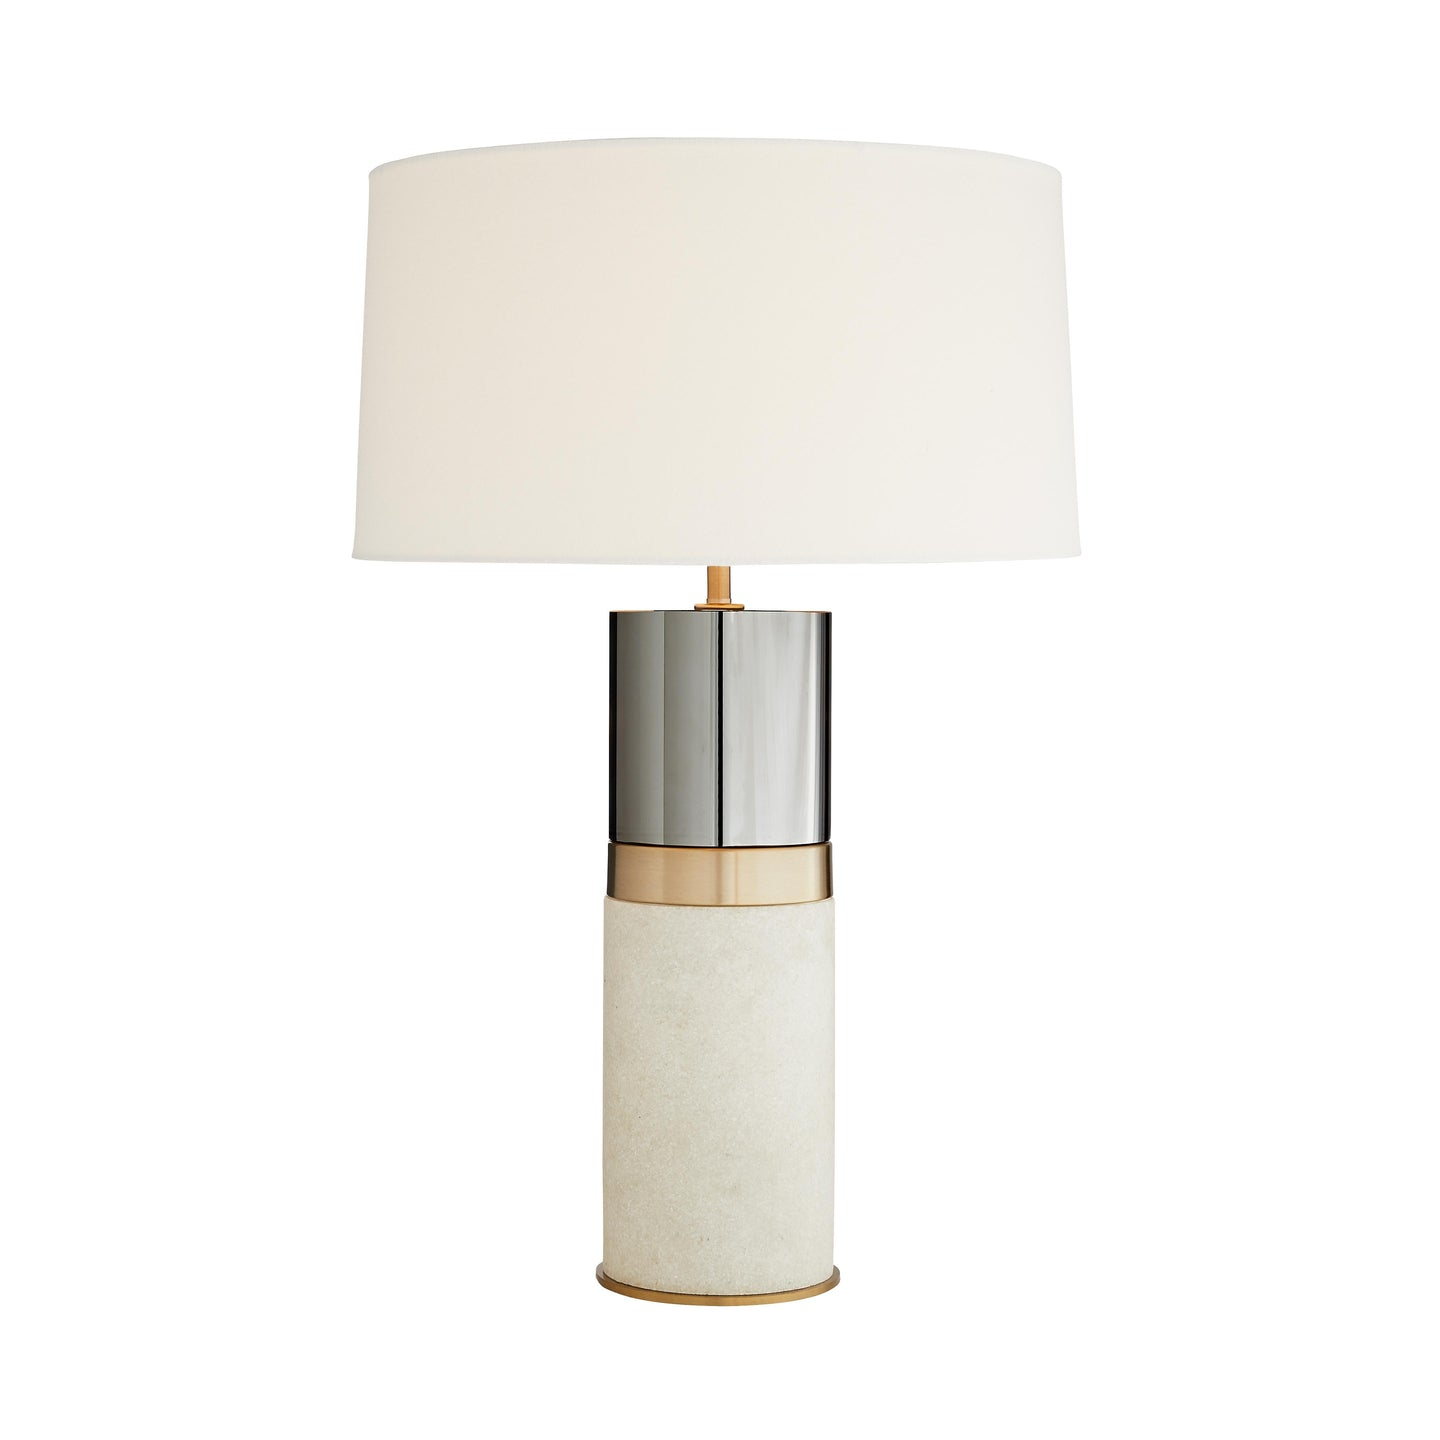 Whitman Lamp